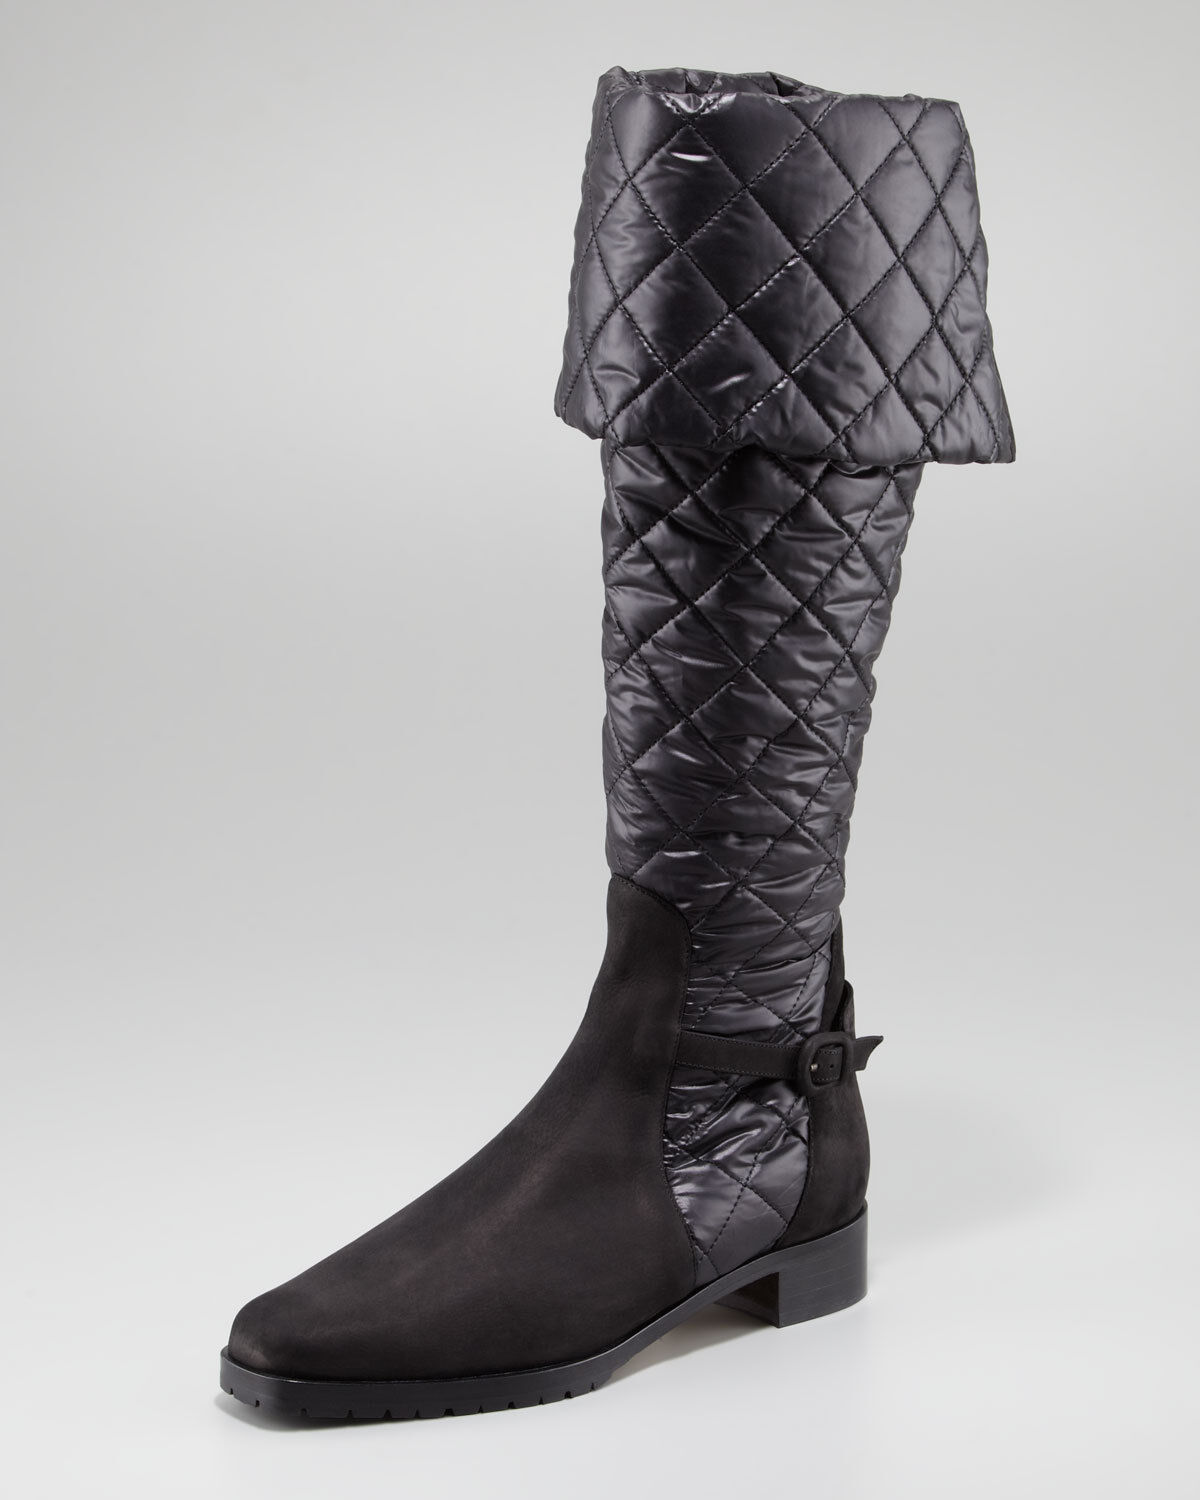 1445 Manolo Blahnik Women's Black Morrow Quilted Boot Size 38 1 2 UK 5.5 US 8.5